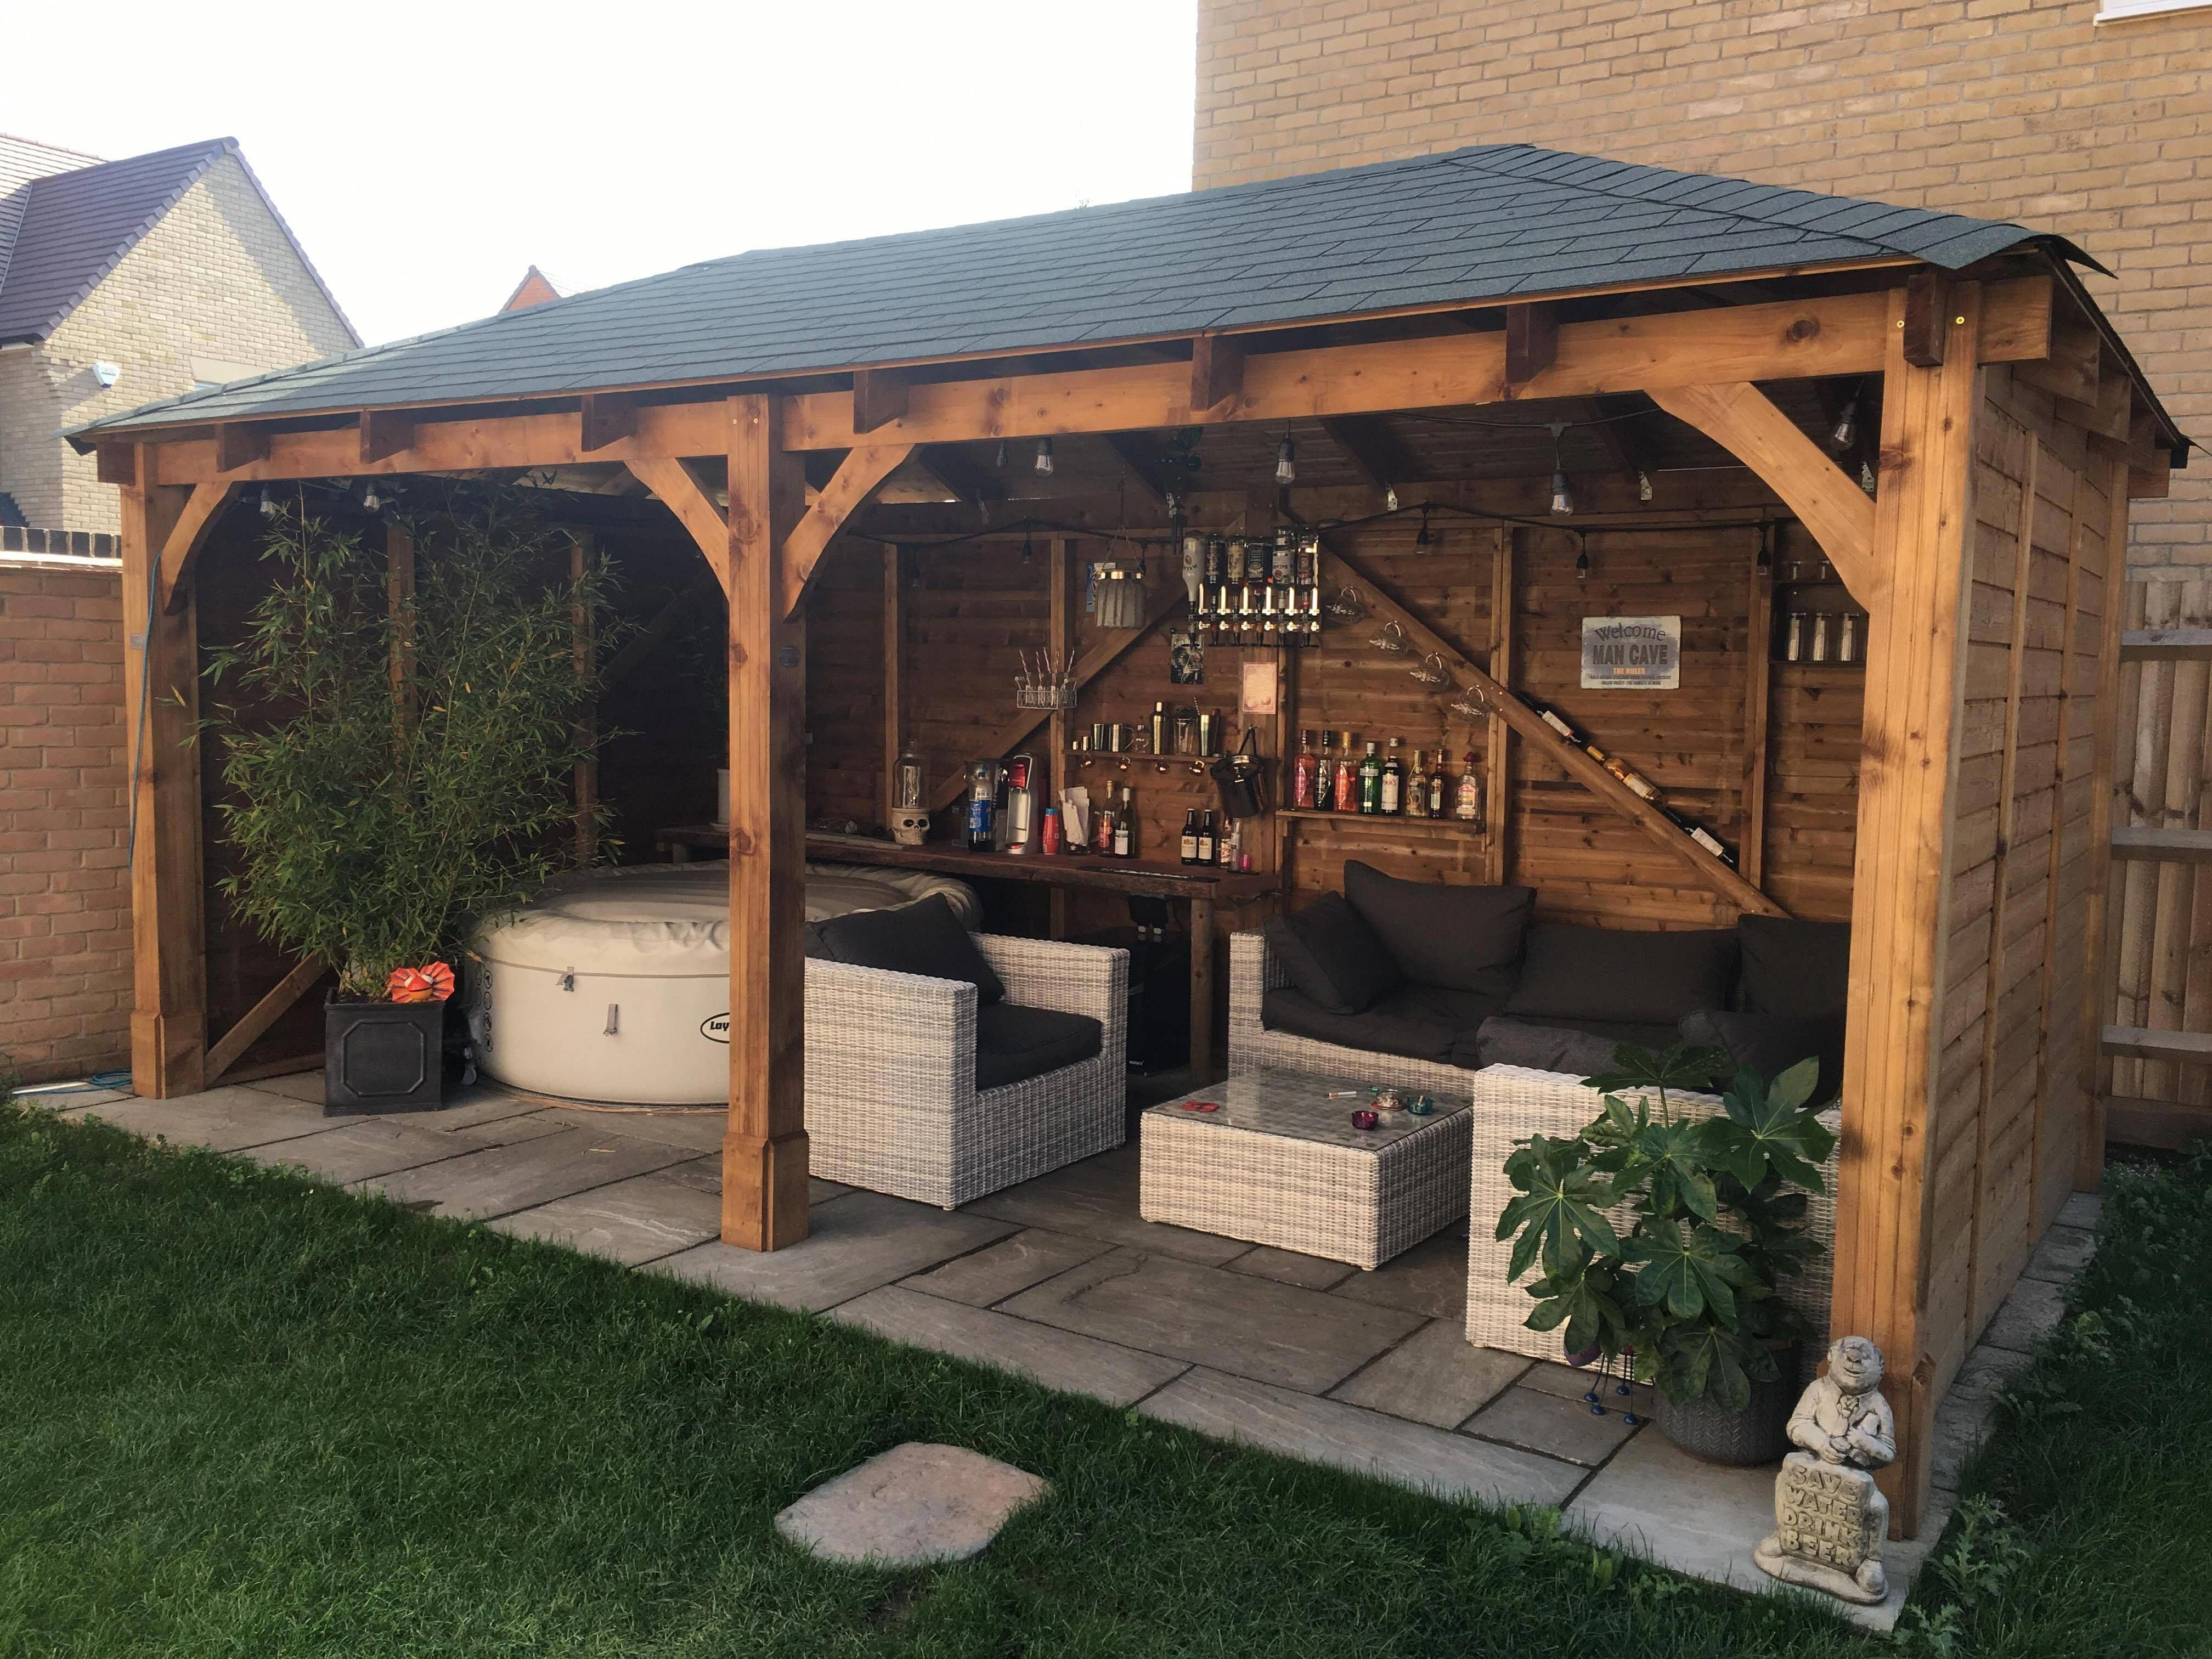 Gorgeous Photo Read Up On Our Short Article For Way More Ideas Patiogazebo Backyard Pavilion Backyard Gazebo Backyard Landscaping Designs Backyard landscaping ideas with gazebo